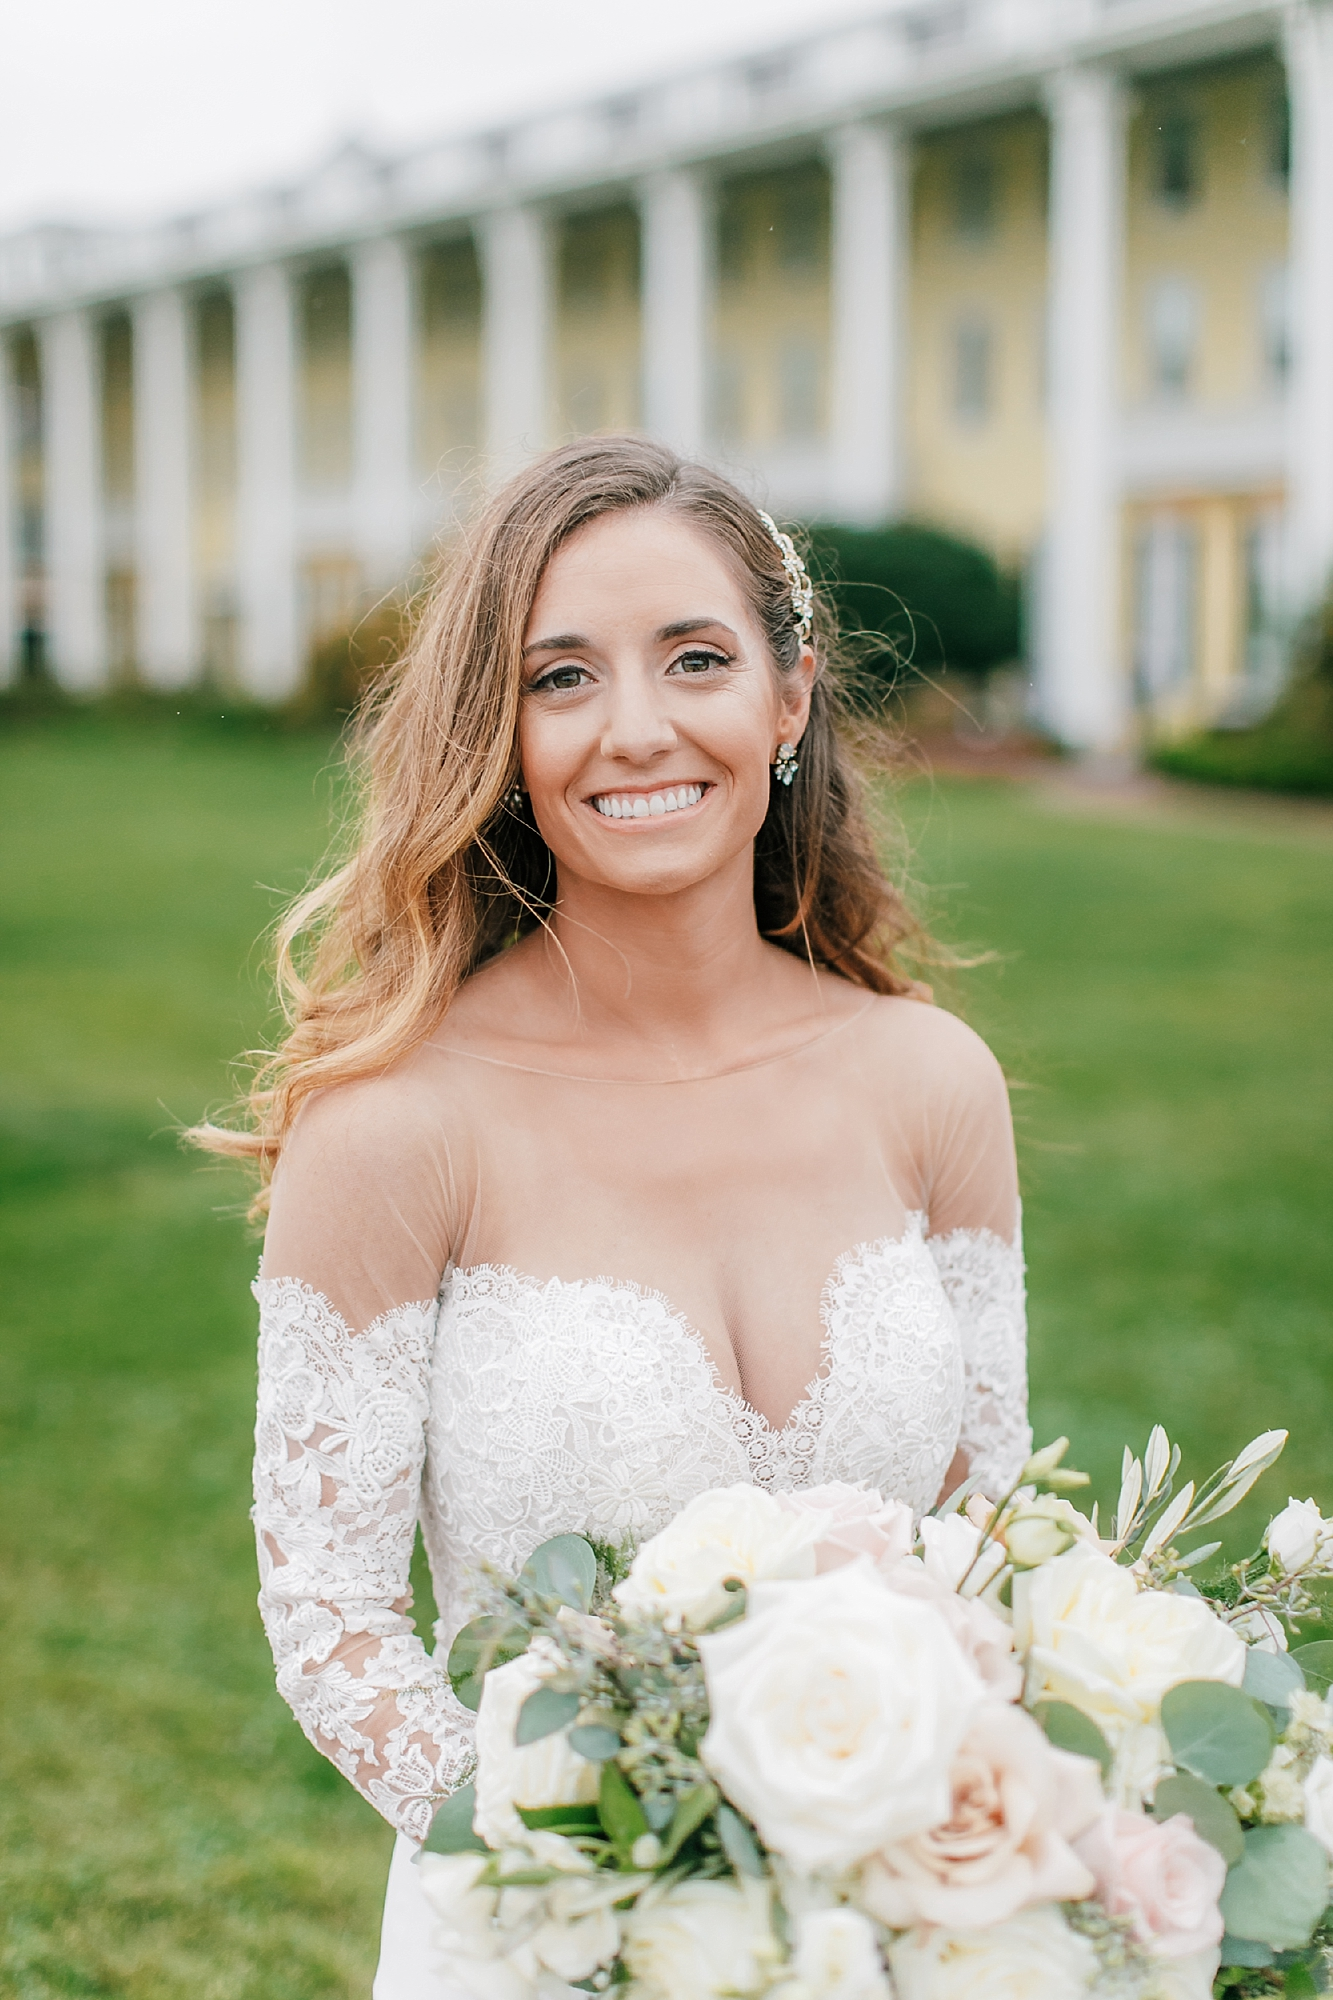 Intimate and Joyful Wedding Photography in Cape May NJ by Magdalena Studios 0010. 4